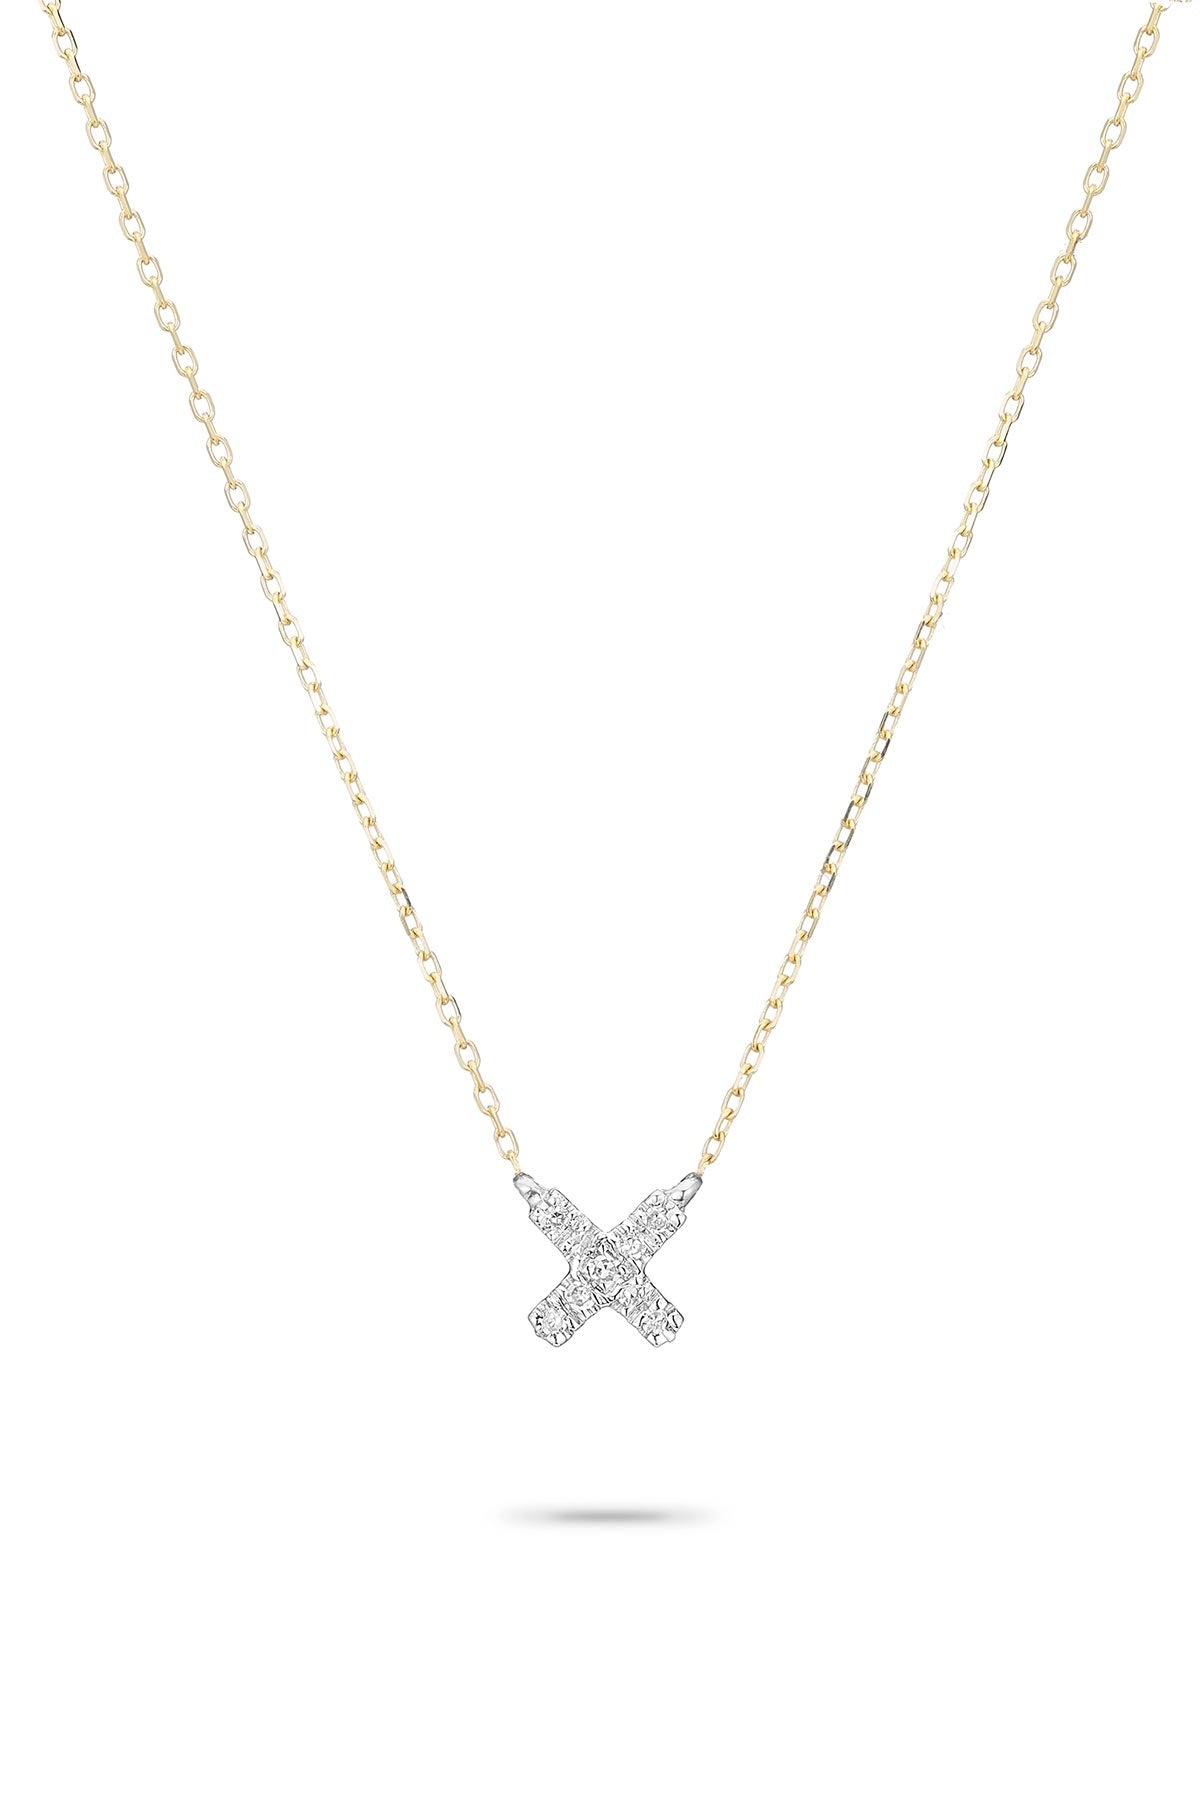 SUPER TINY PAVÉ X NECKLACE by ADINA REYTER